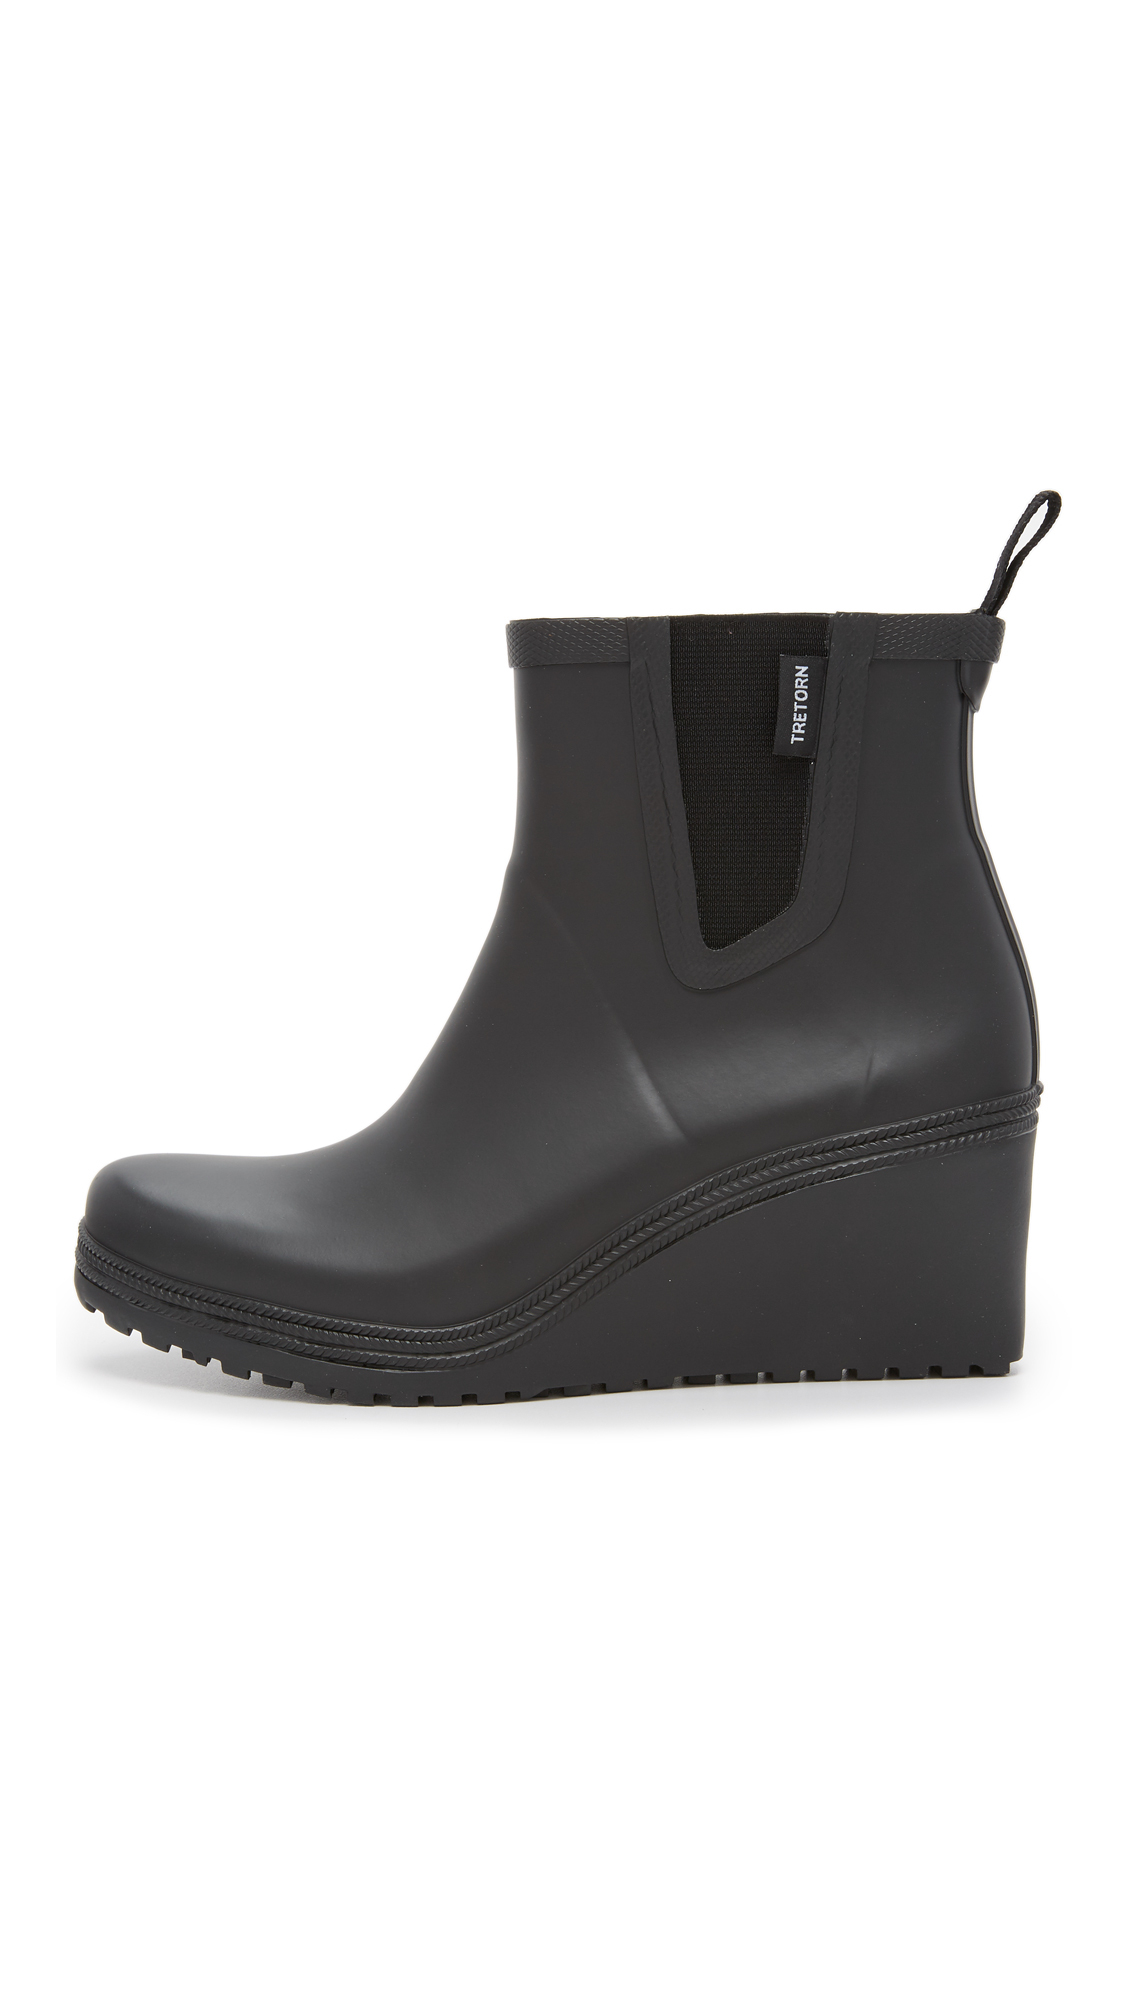 Tretorn Rubber Emma Chelsea Wedge Rain Booties In Black Lyst